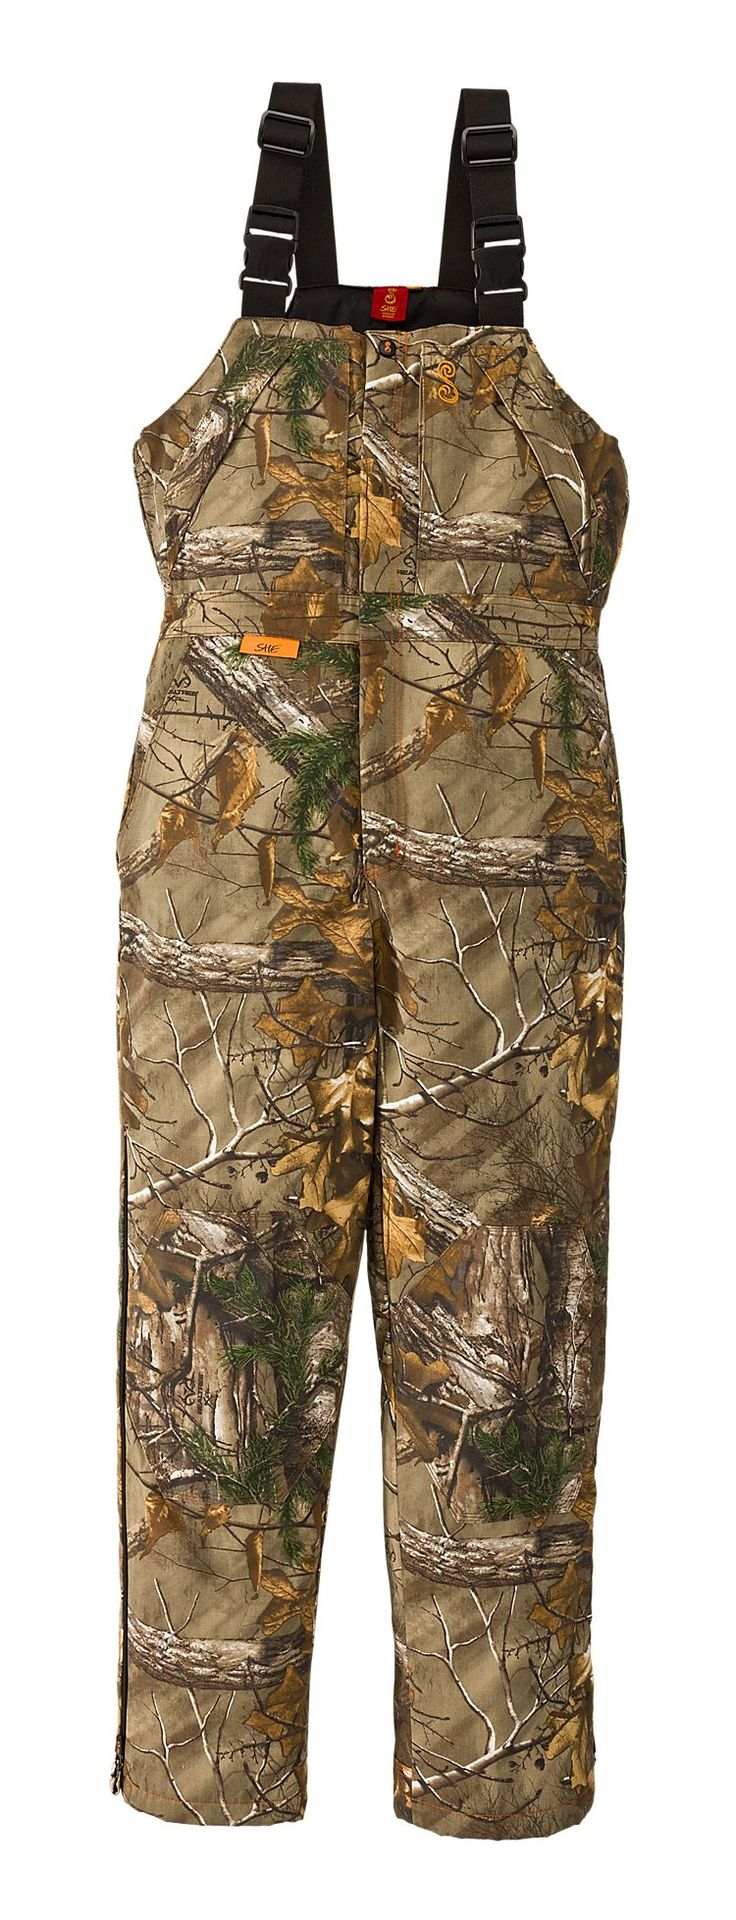 SHE Outdoor Insulated Hunting Bibs for Ladies | Bass Pro Shops (Size 28 or 6)